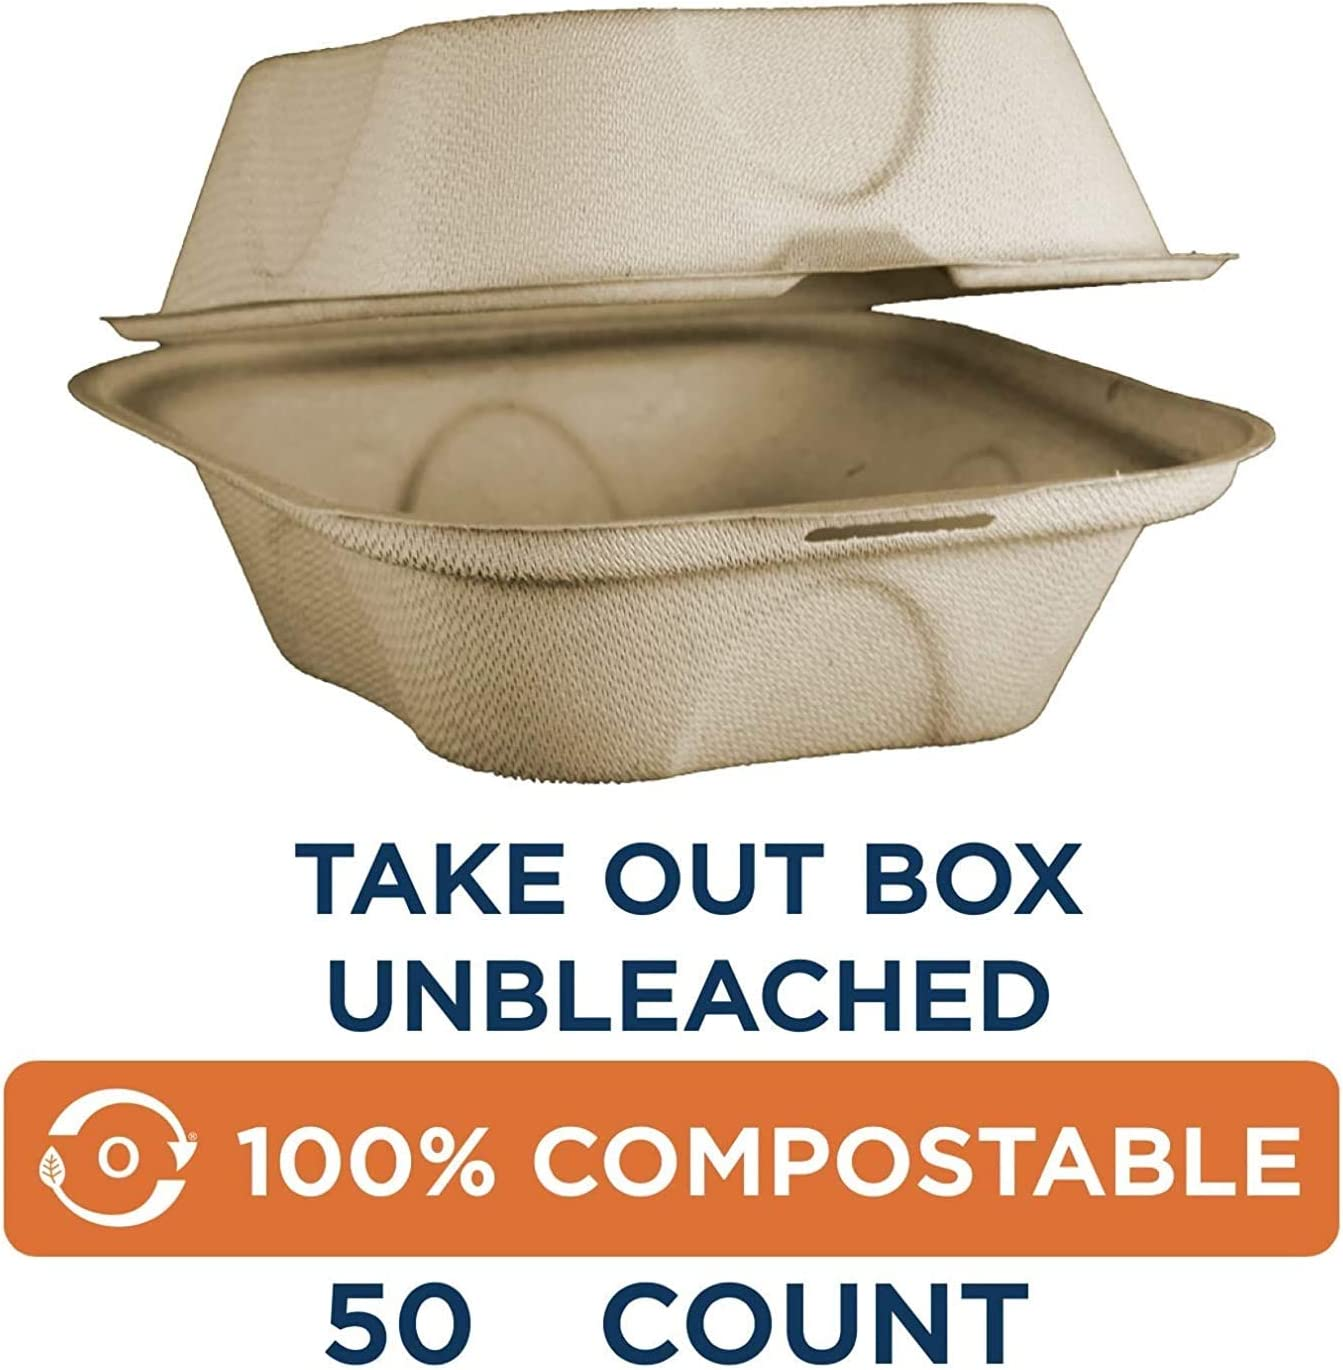 Pack of 500 World Centric TO-SC-U15B 100/% Compostable Unbleached Plant Fiber Burger Box Take Out Containers 6 x 6 x 3